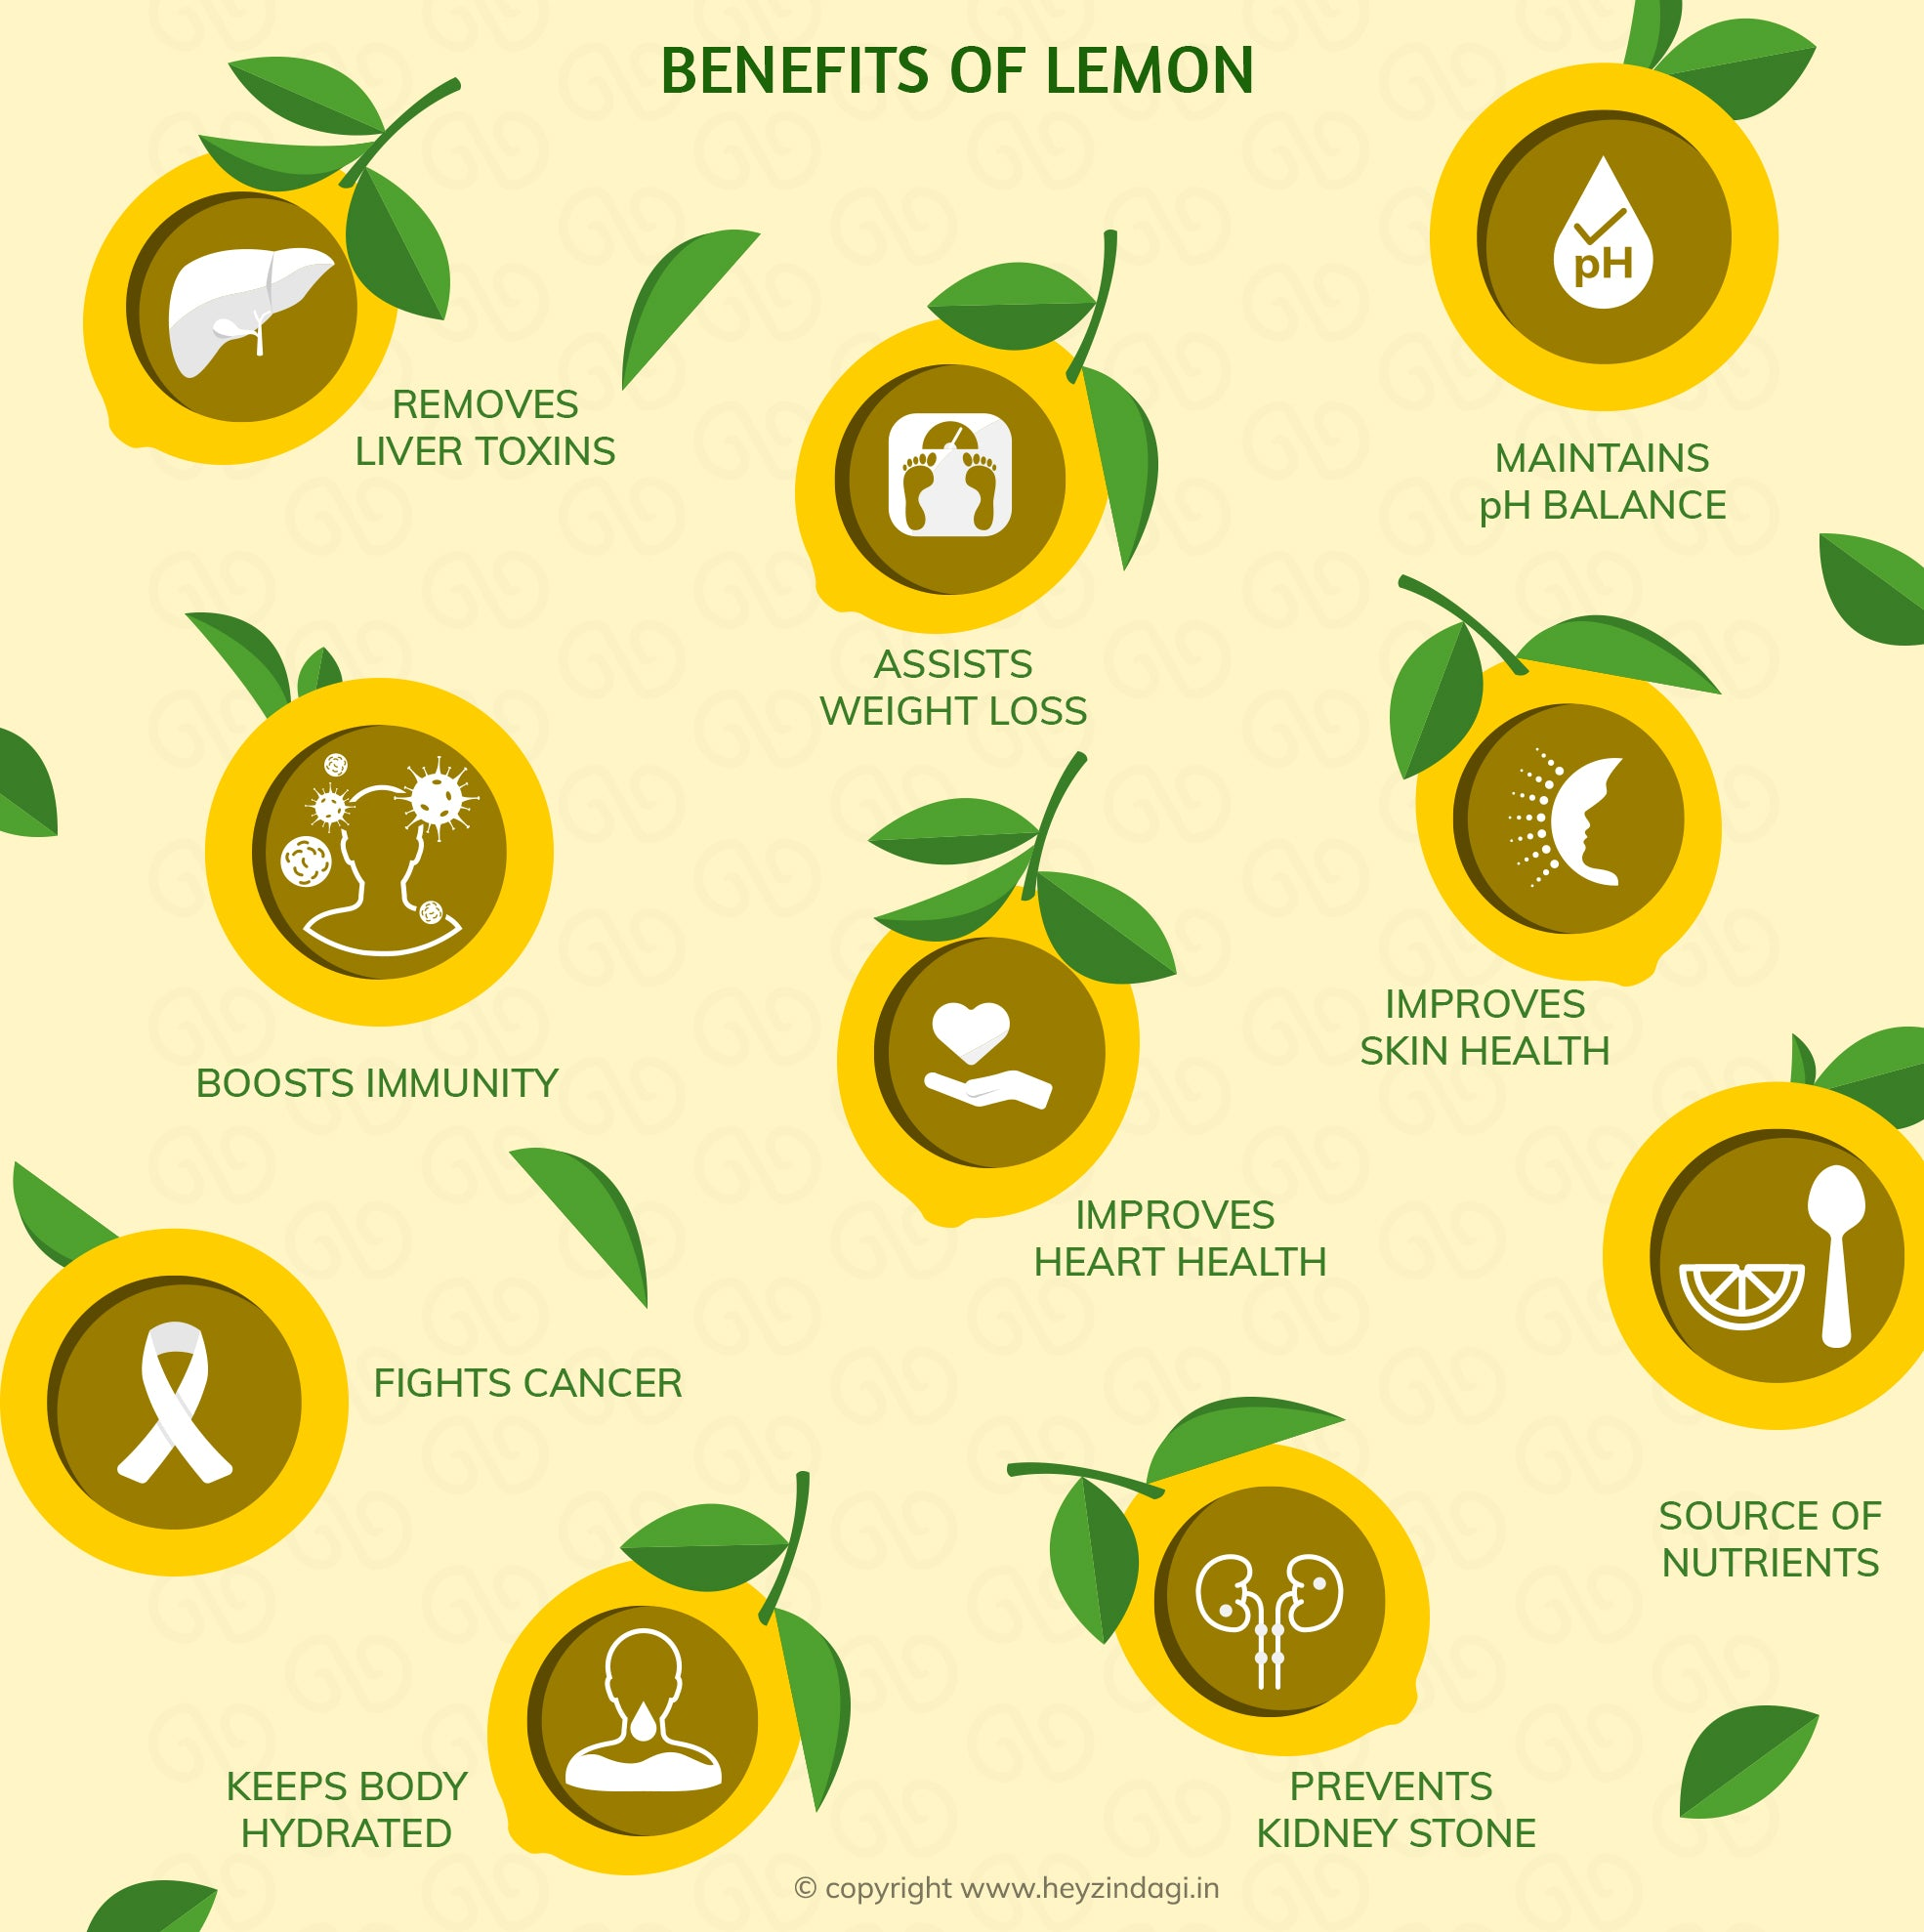 Benefits of Lemon hey zindagi blog